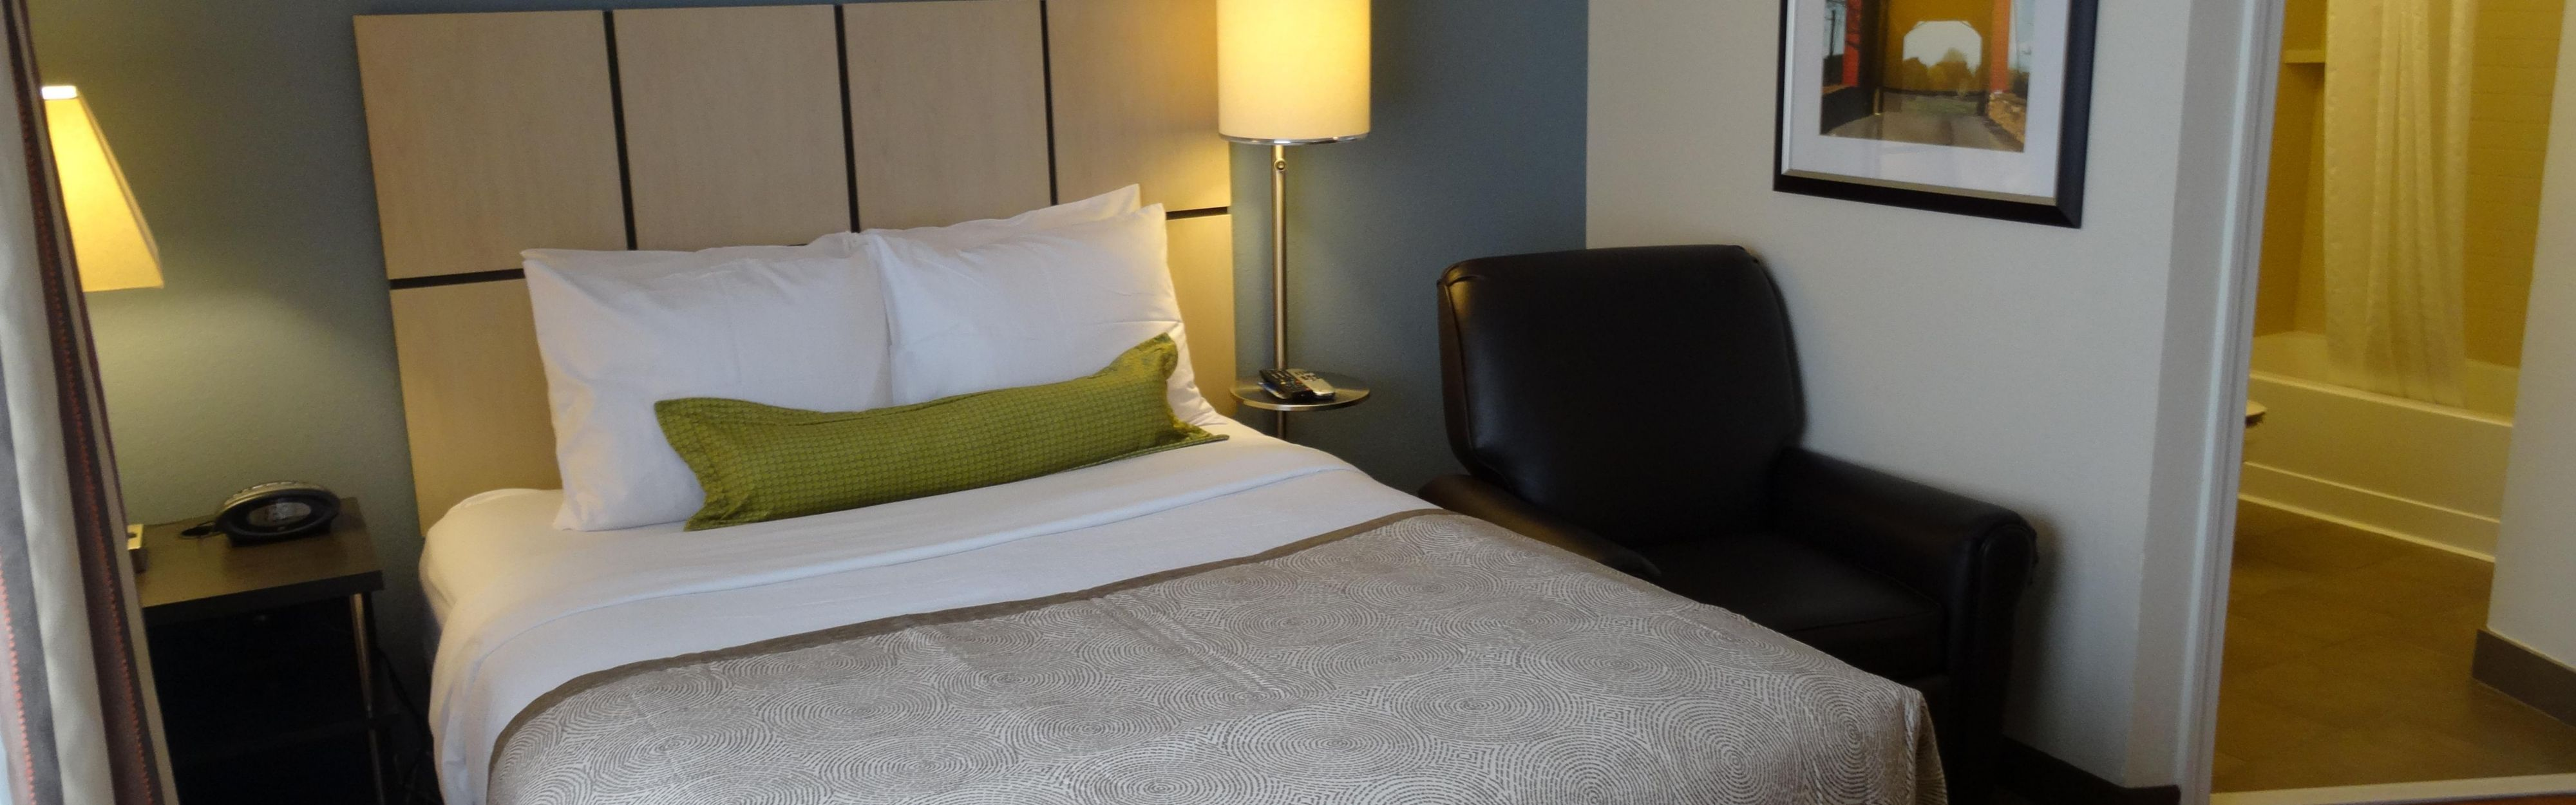 Candlewood Suites Cleveland-N. Olmsted image 1